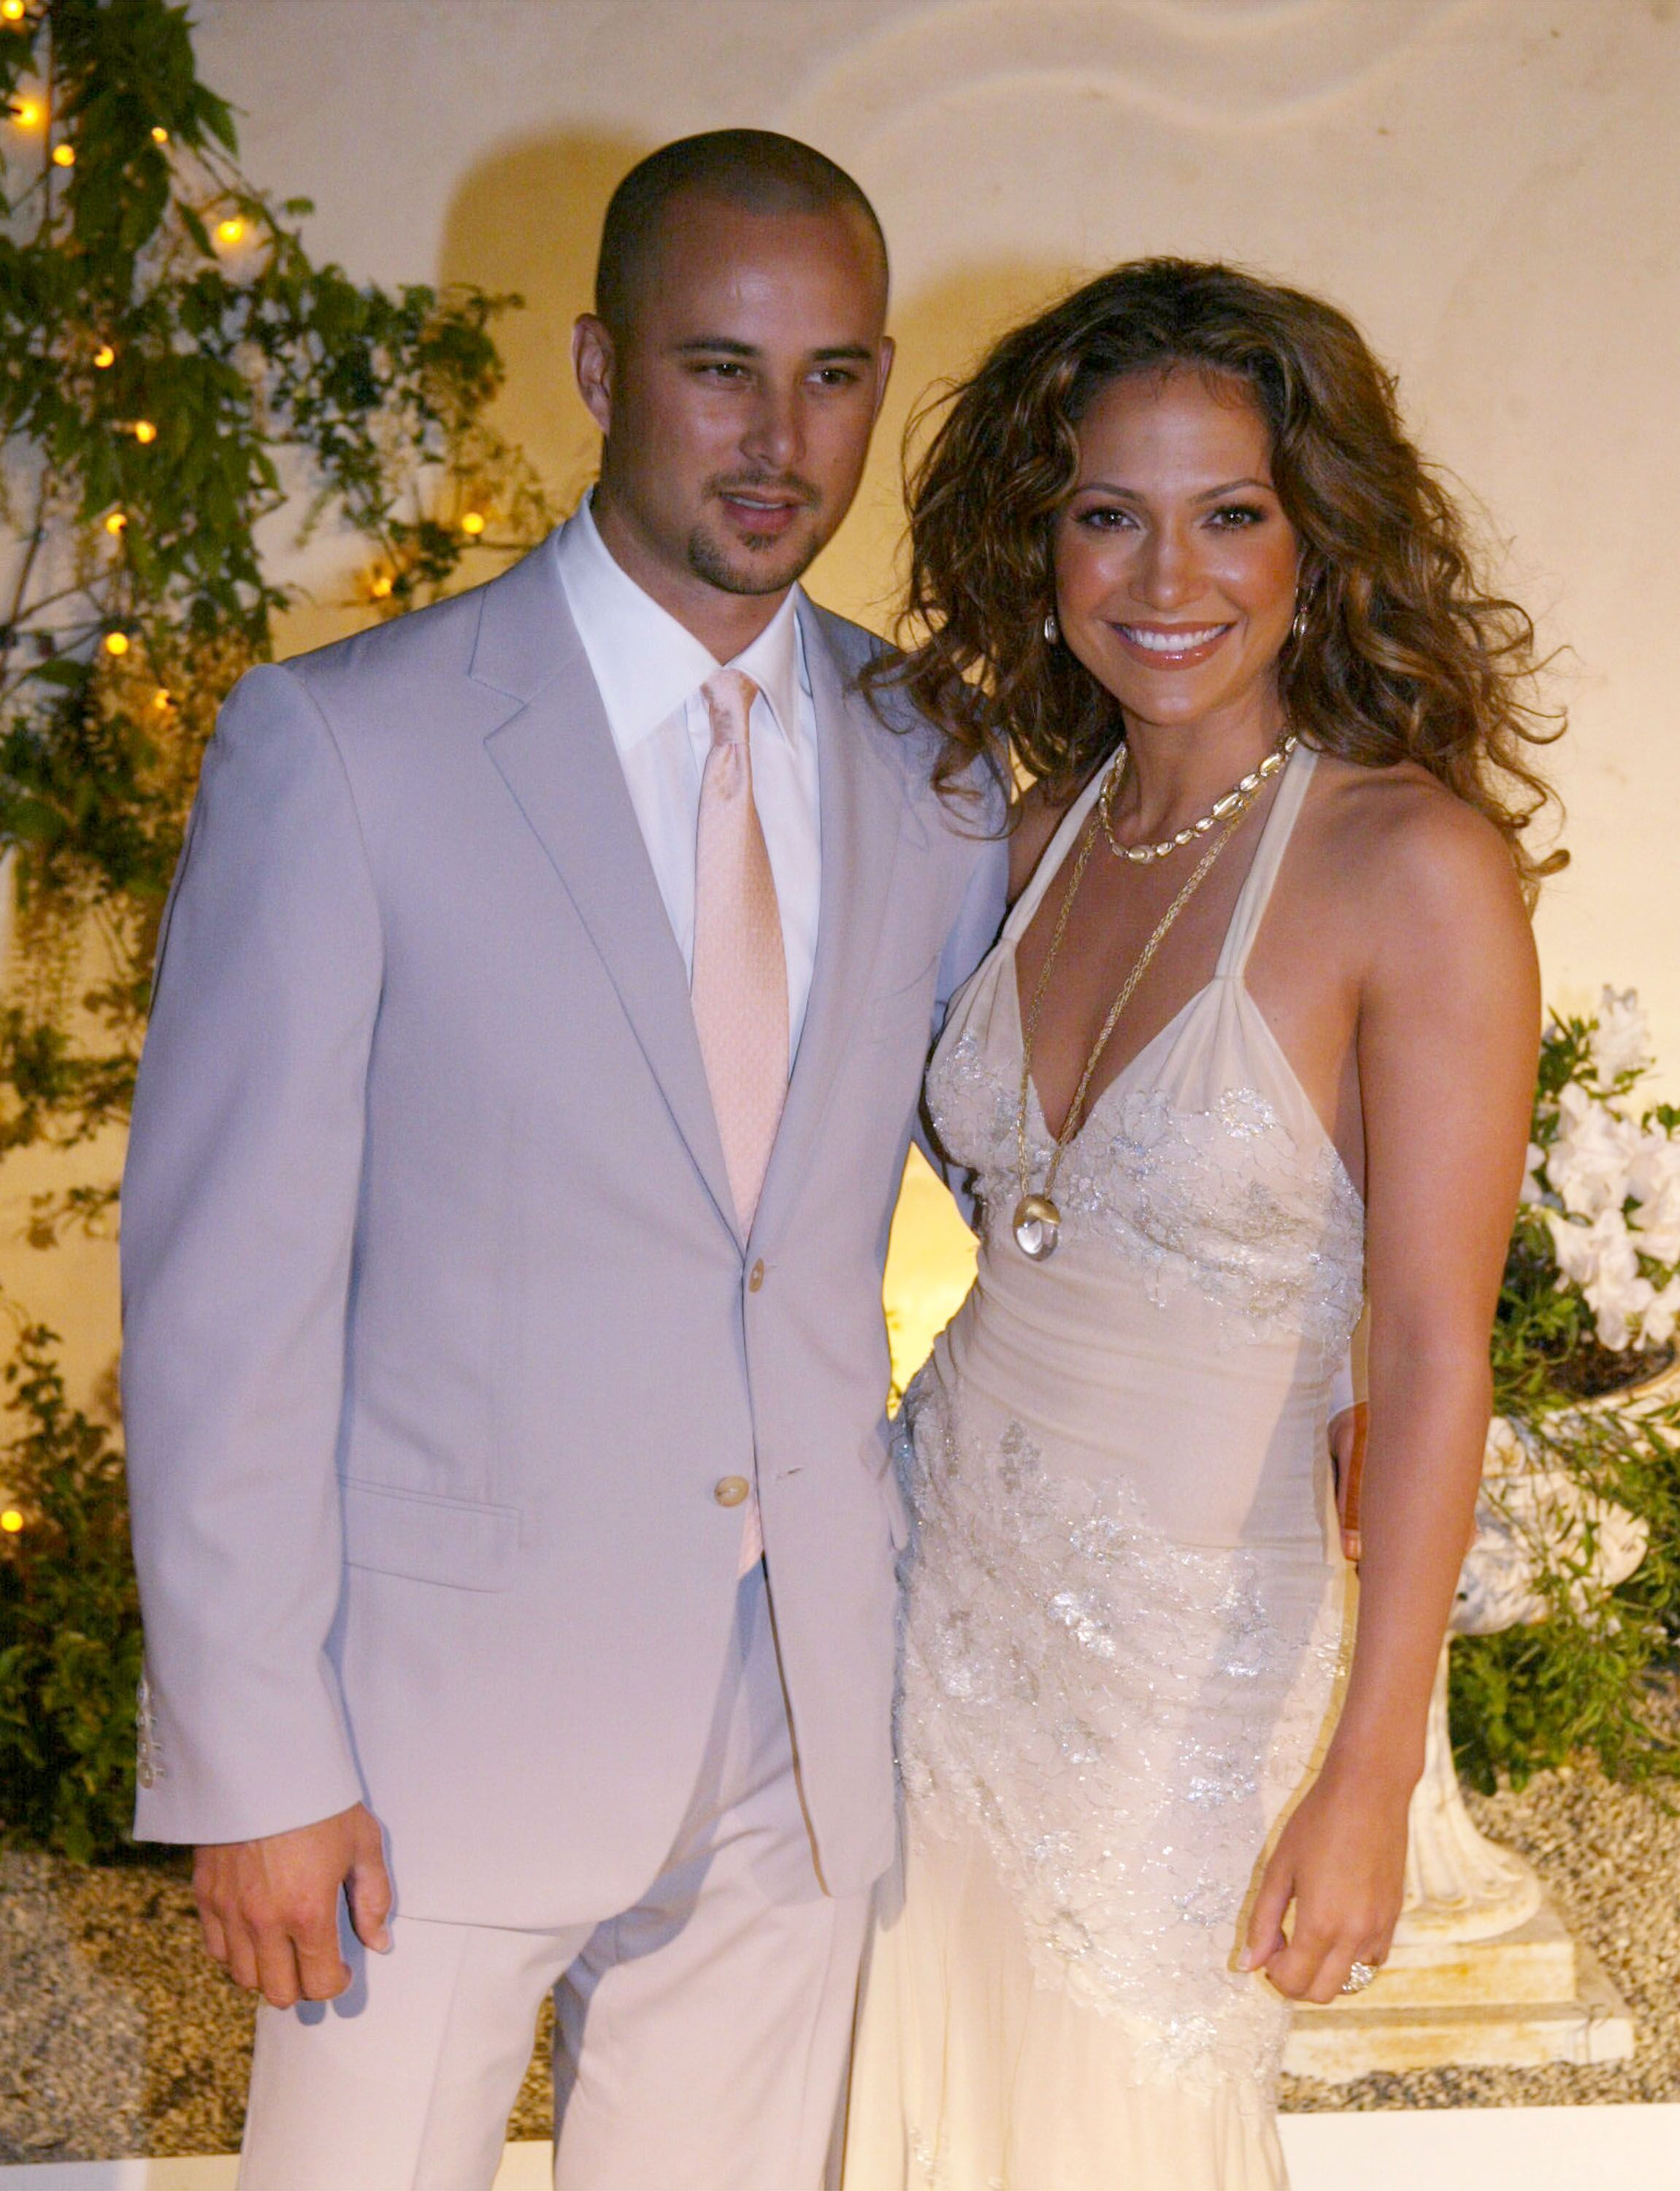 Jennifer Lopez and ex-husband Cris Judd at the opening of her restaurant, Madres, in Pasadena in 2002 | Source: Getty Images